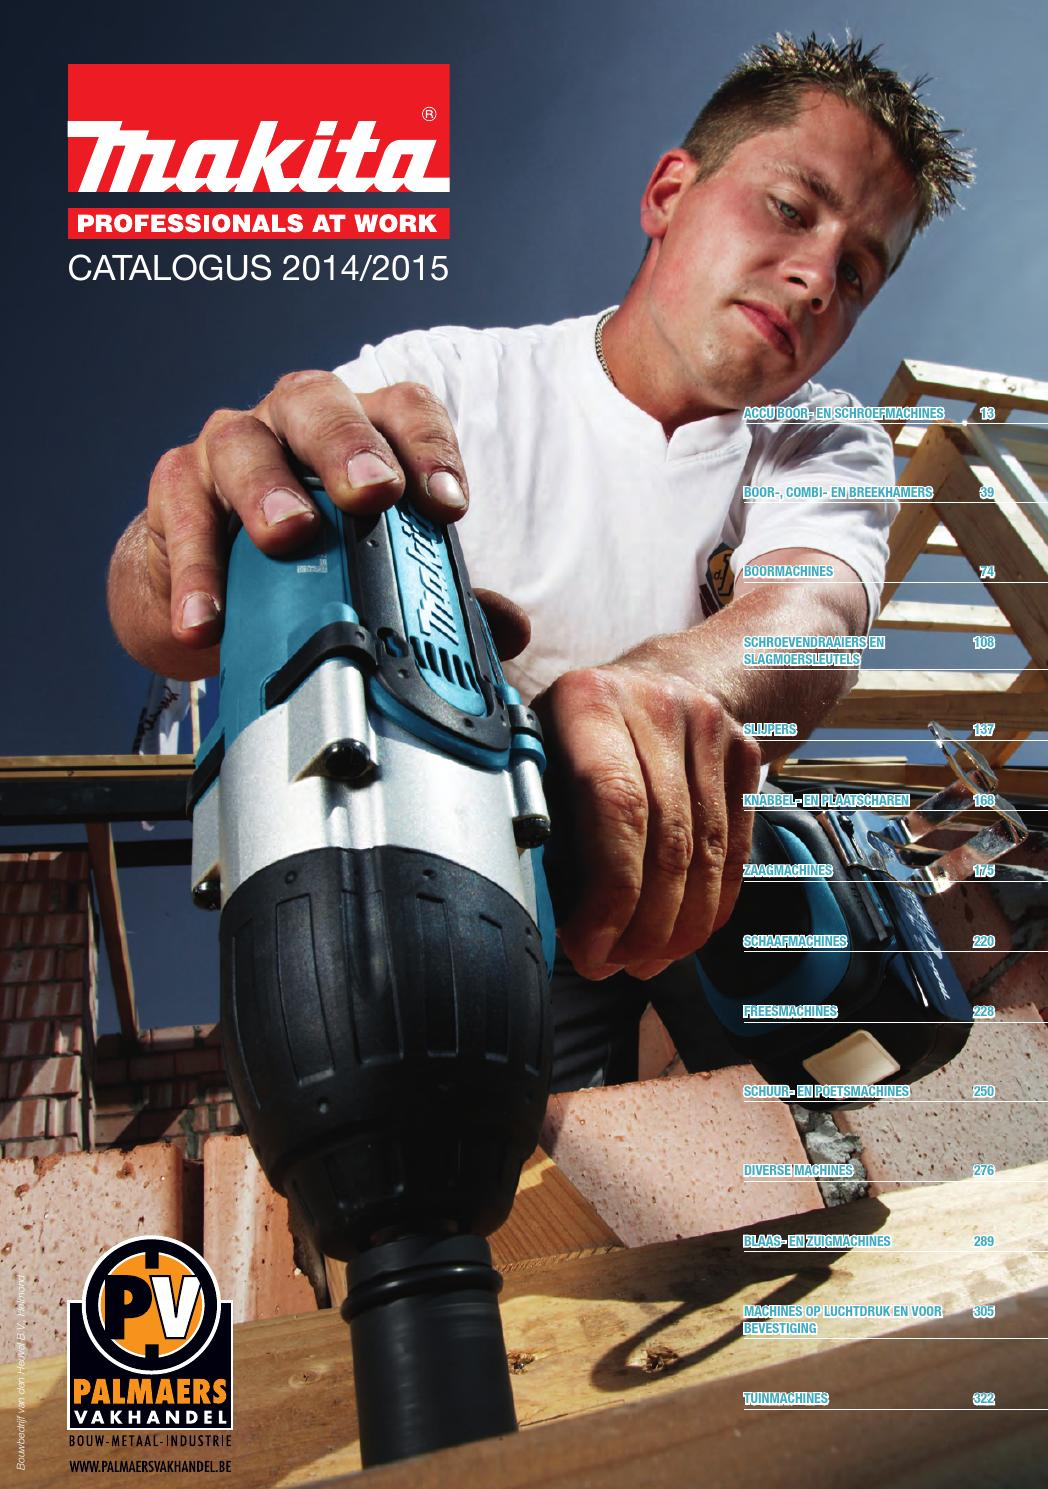 Makita - catalogus 2014-2015 by Ivo Palmaers - issuu